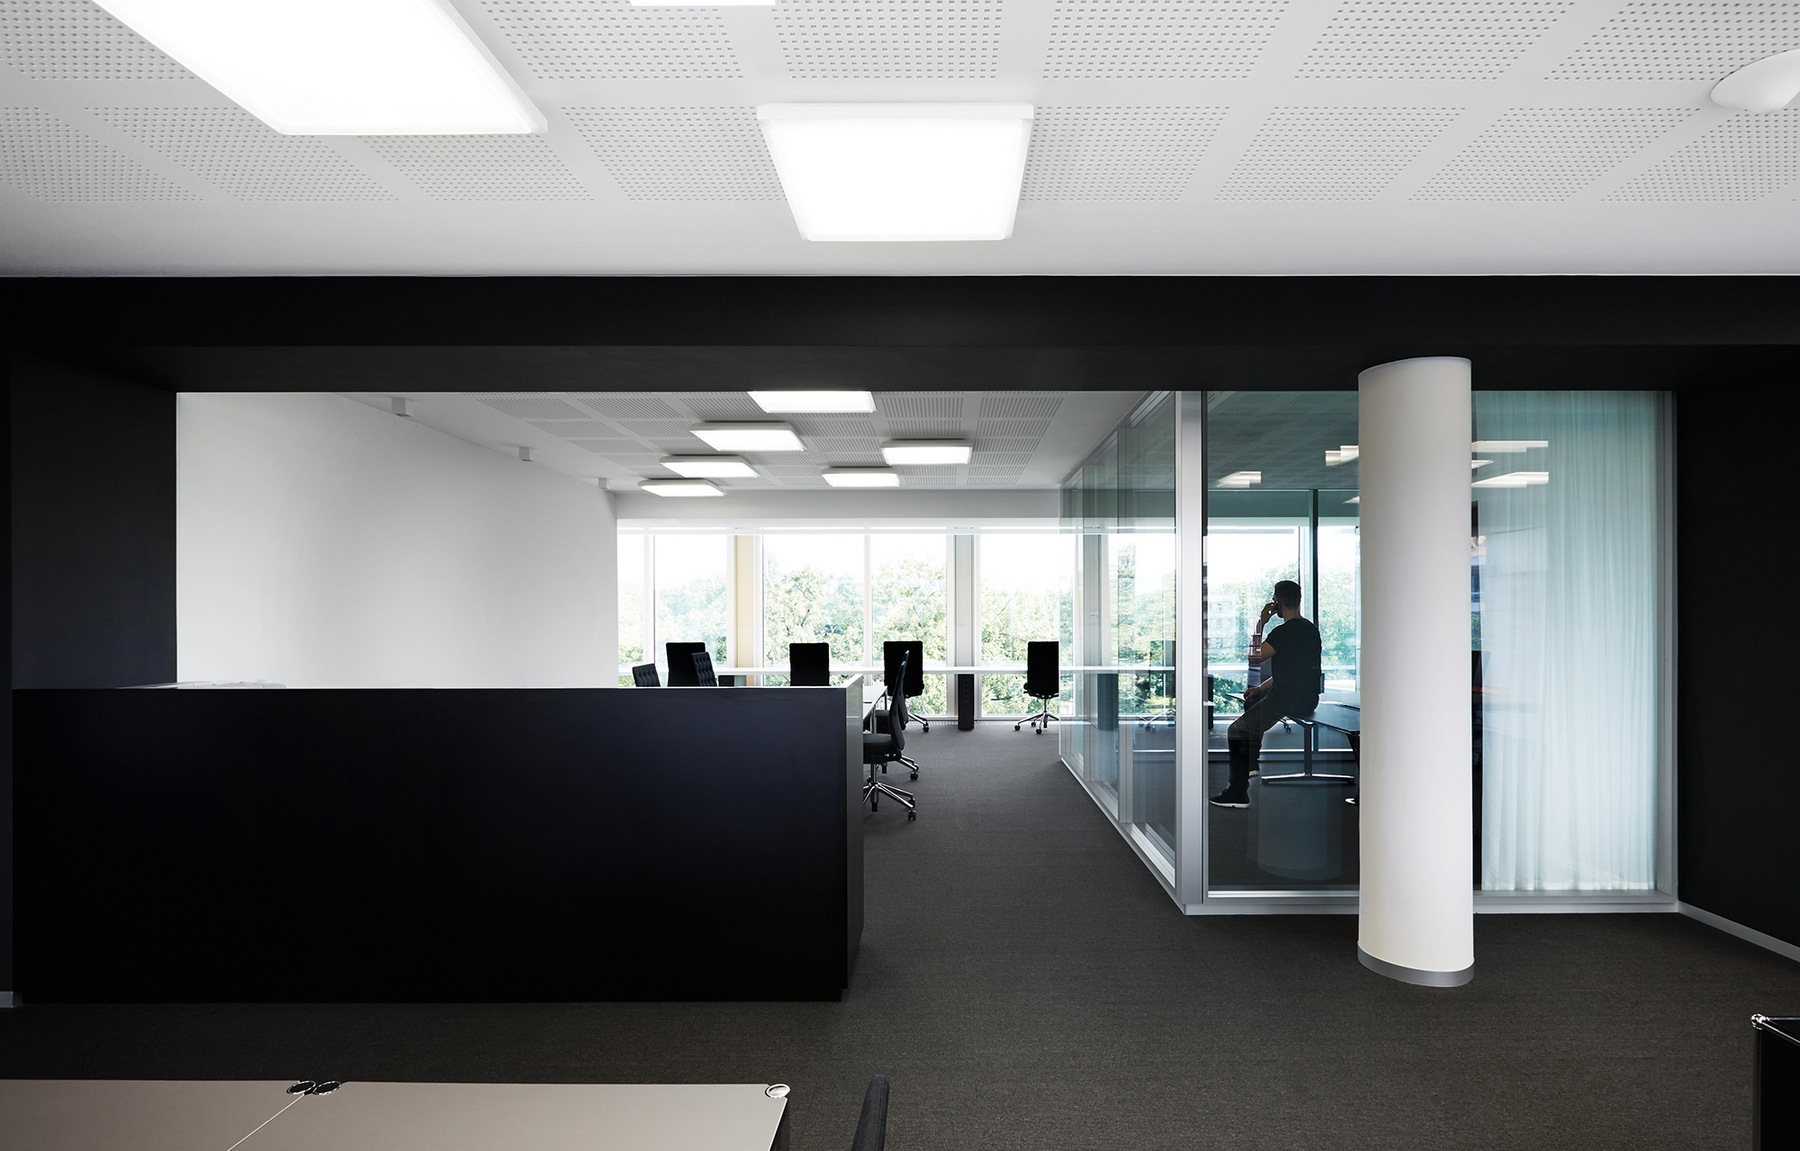 houzz interior design ideas office designs. black and white office interior. international company interior design houzz ideas designs